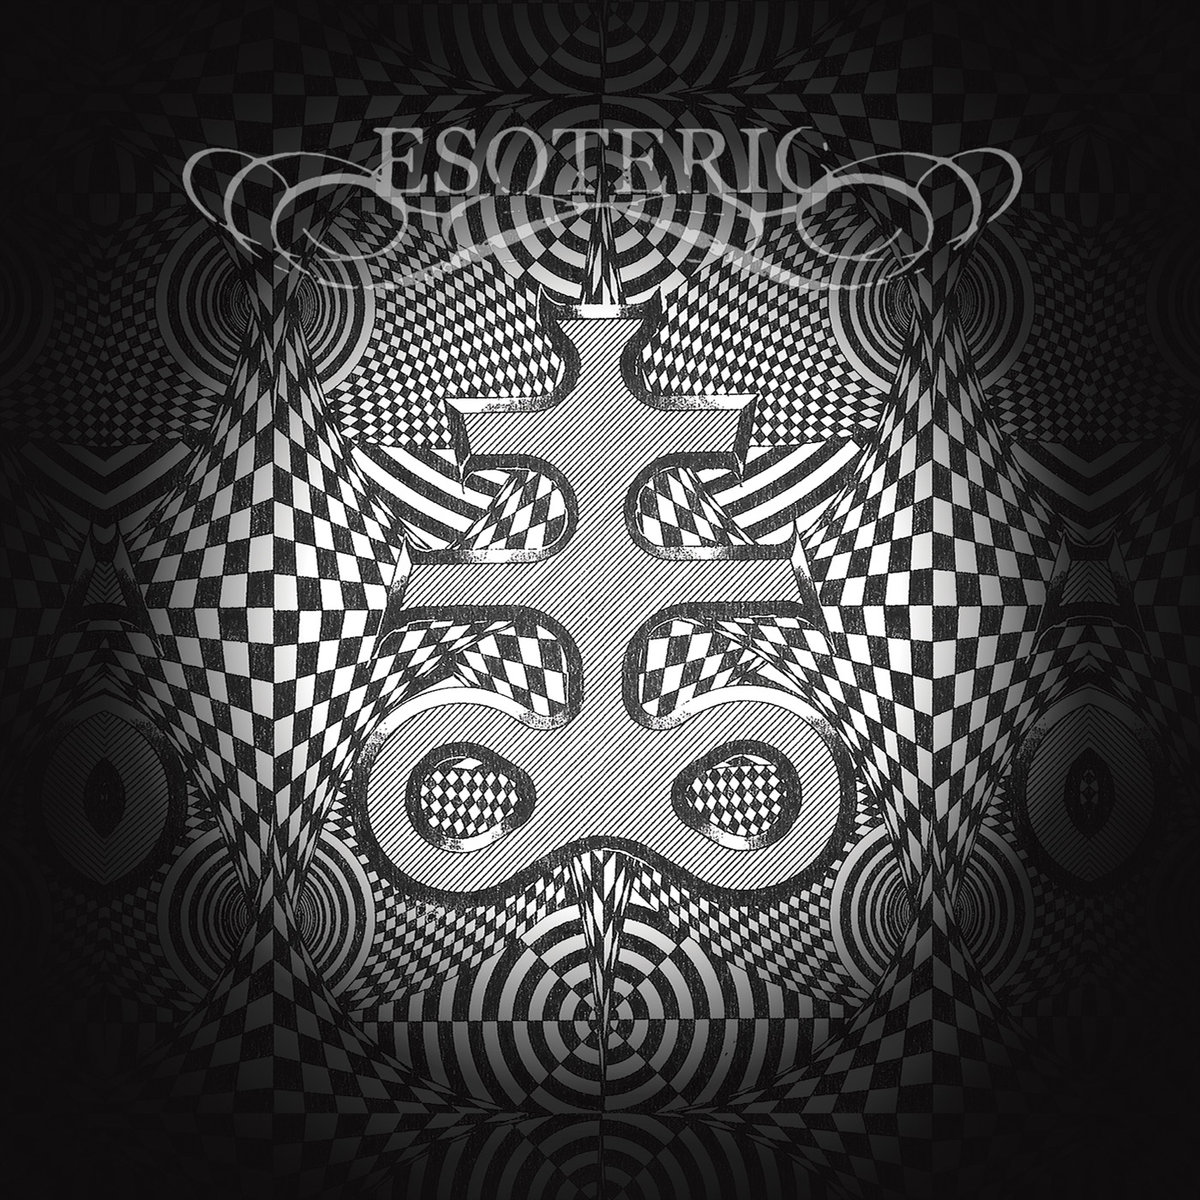 Esoteric - Esoteric Emotions-The Death of Ignorance (Digibook)